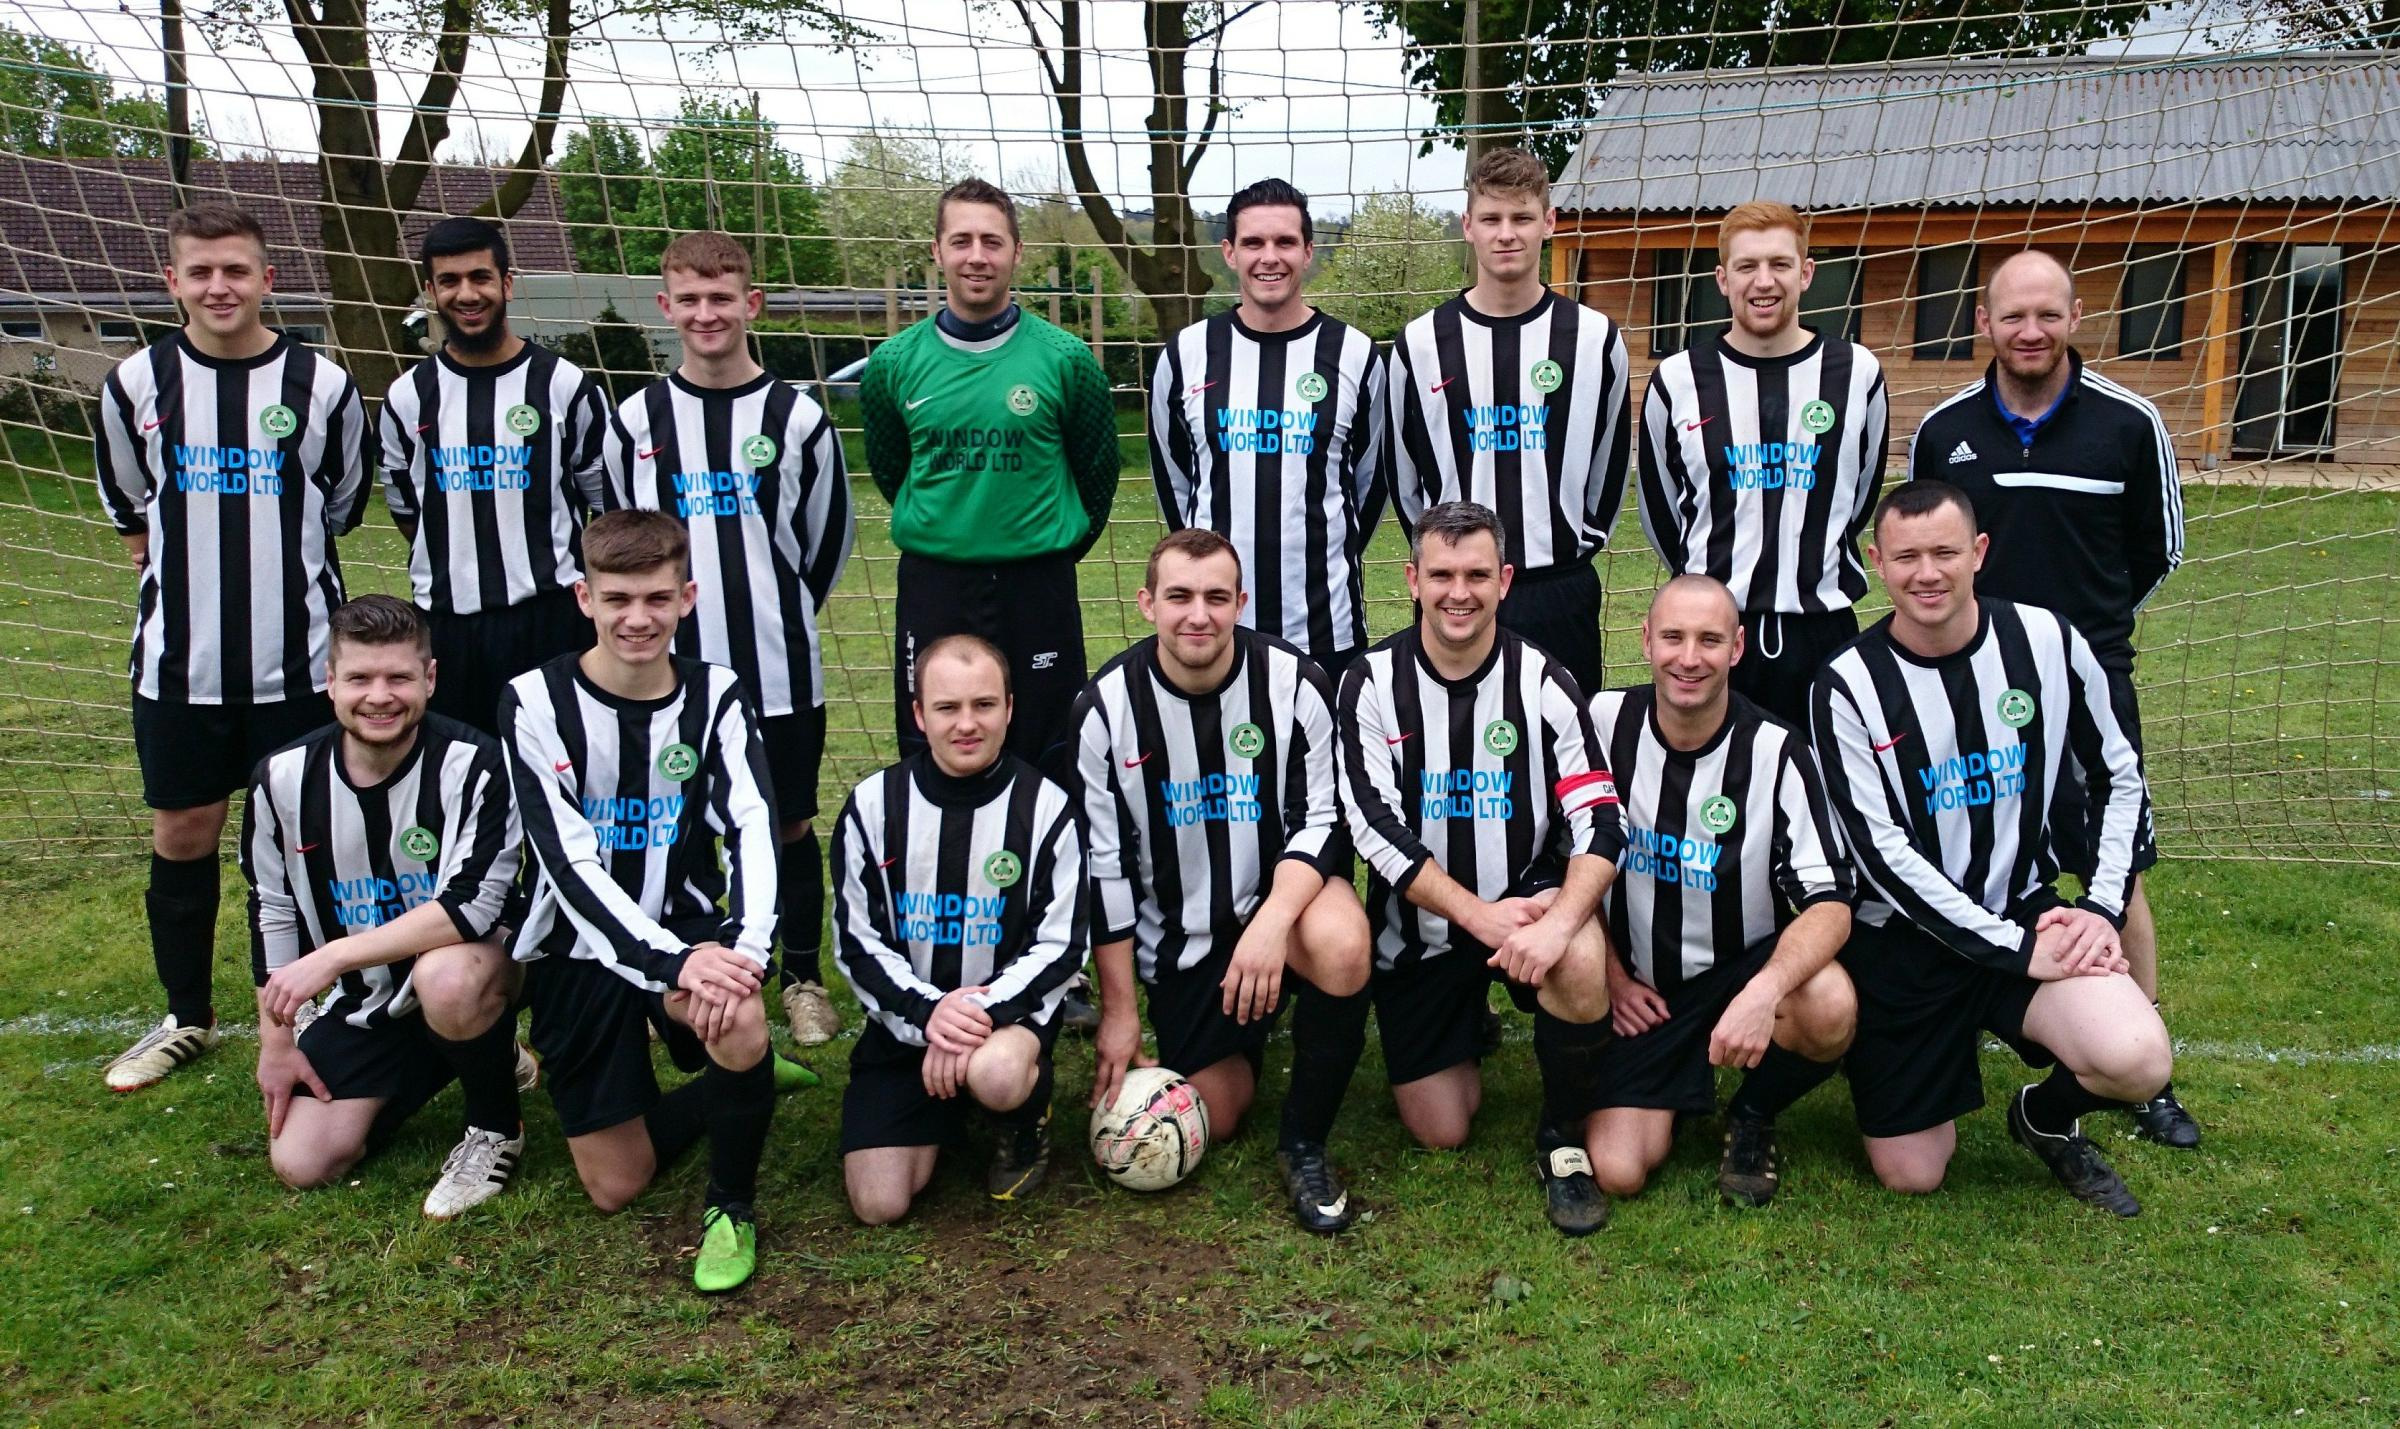 Braishfield's title winning team.